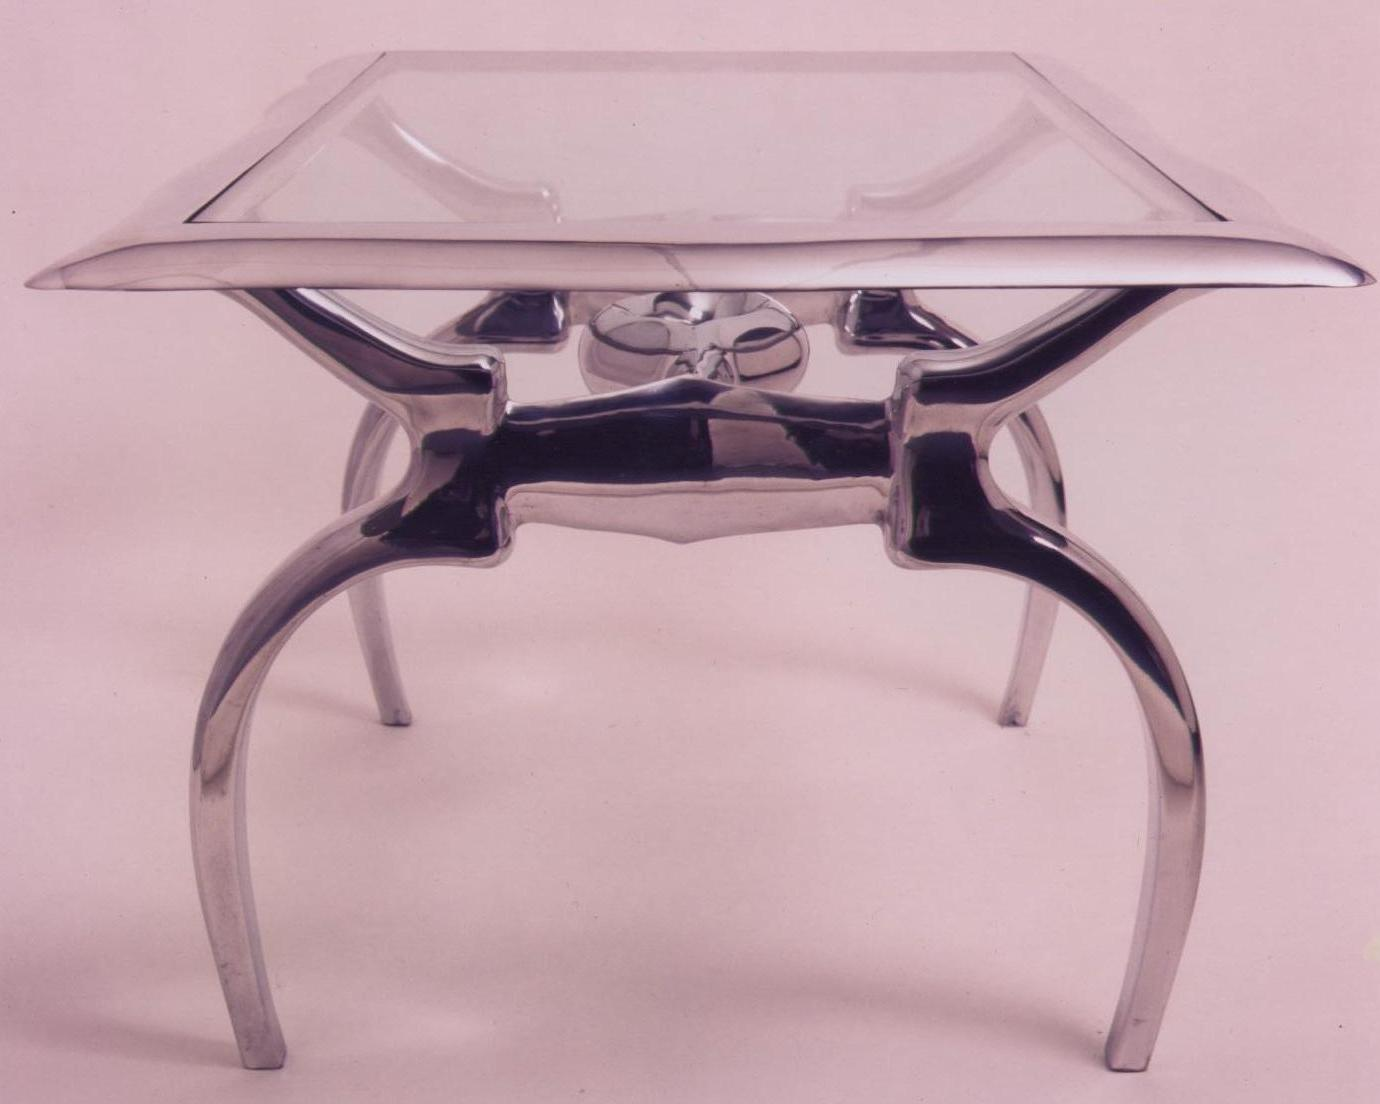 Eveleigh Cocktail Table - Tables and Chairs - Wrought Artworks - Iron work Australia